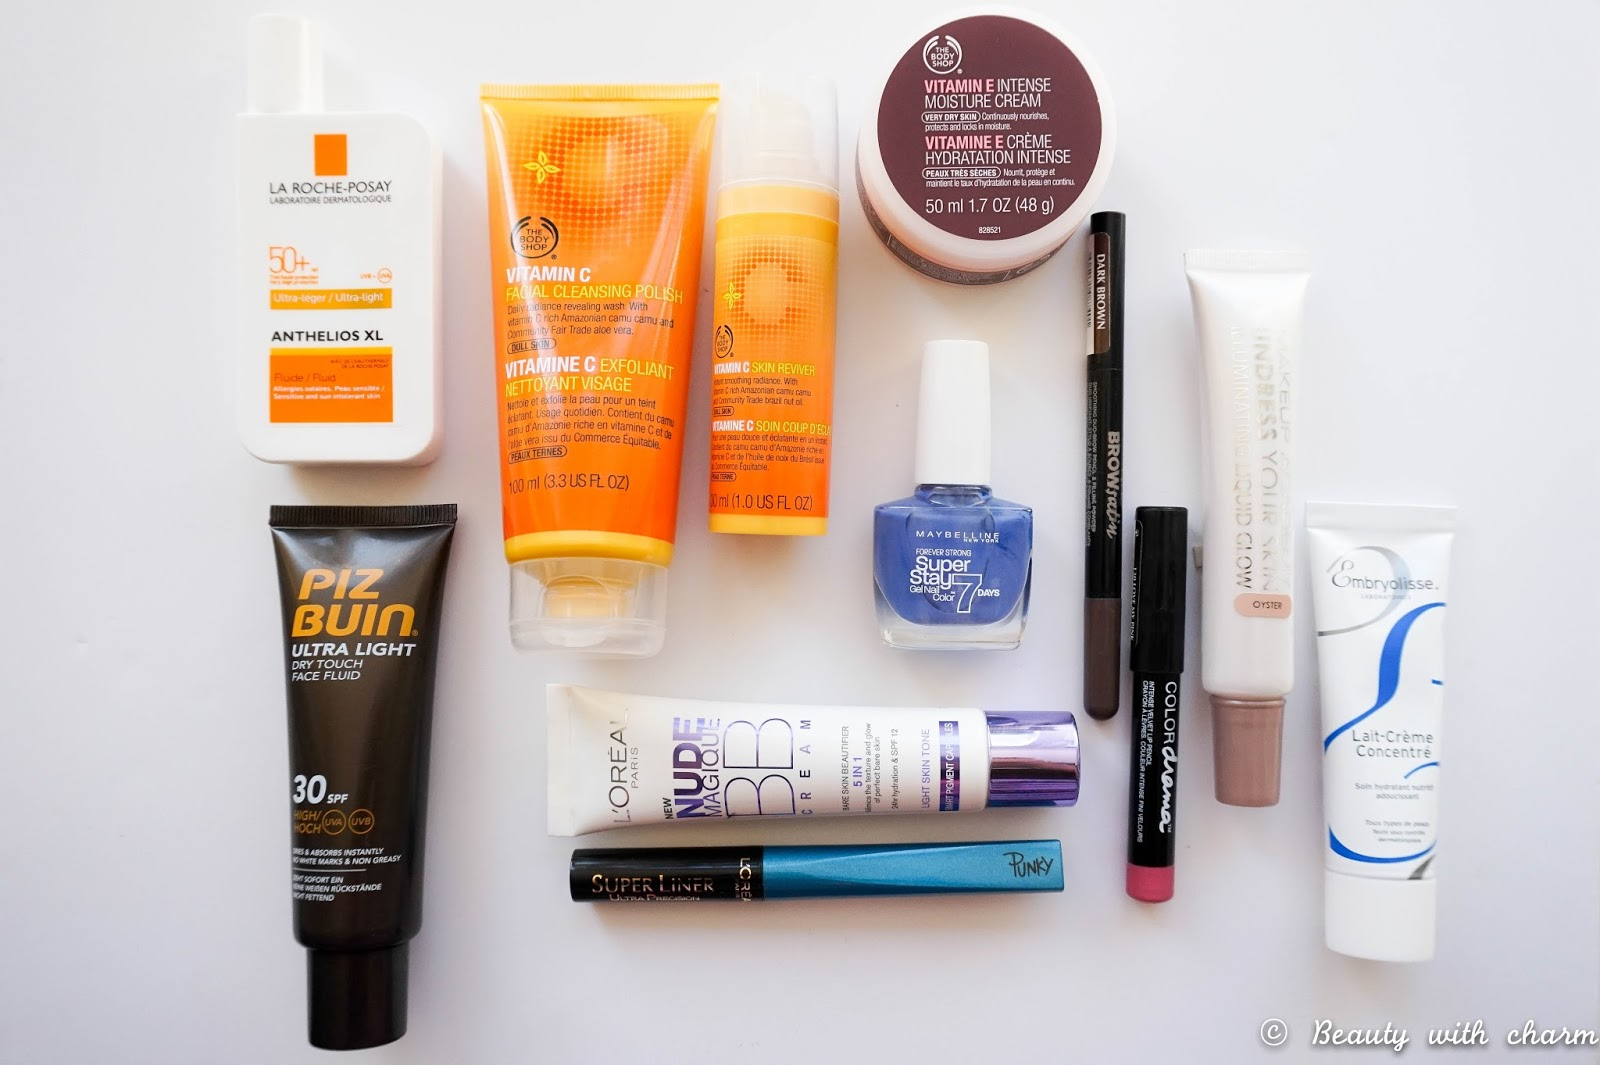 Collective Beauty Haul, La Roche Posay, Piz Buin, The Body Shop, Vitamin C, Vitamin E, Maybelline, L'Oreal, MUA, Embryolisse